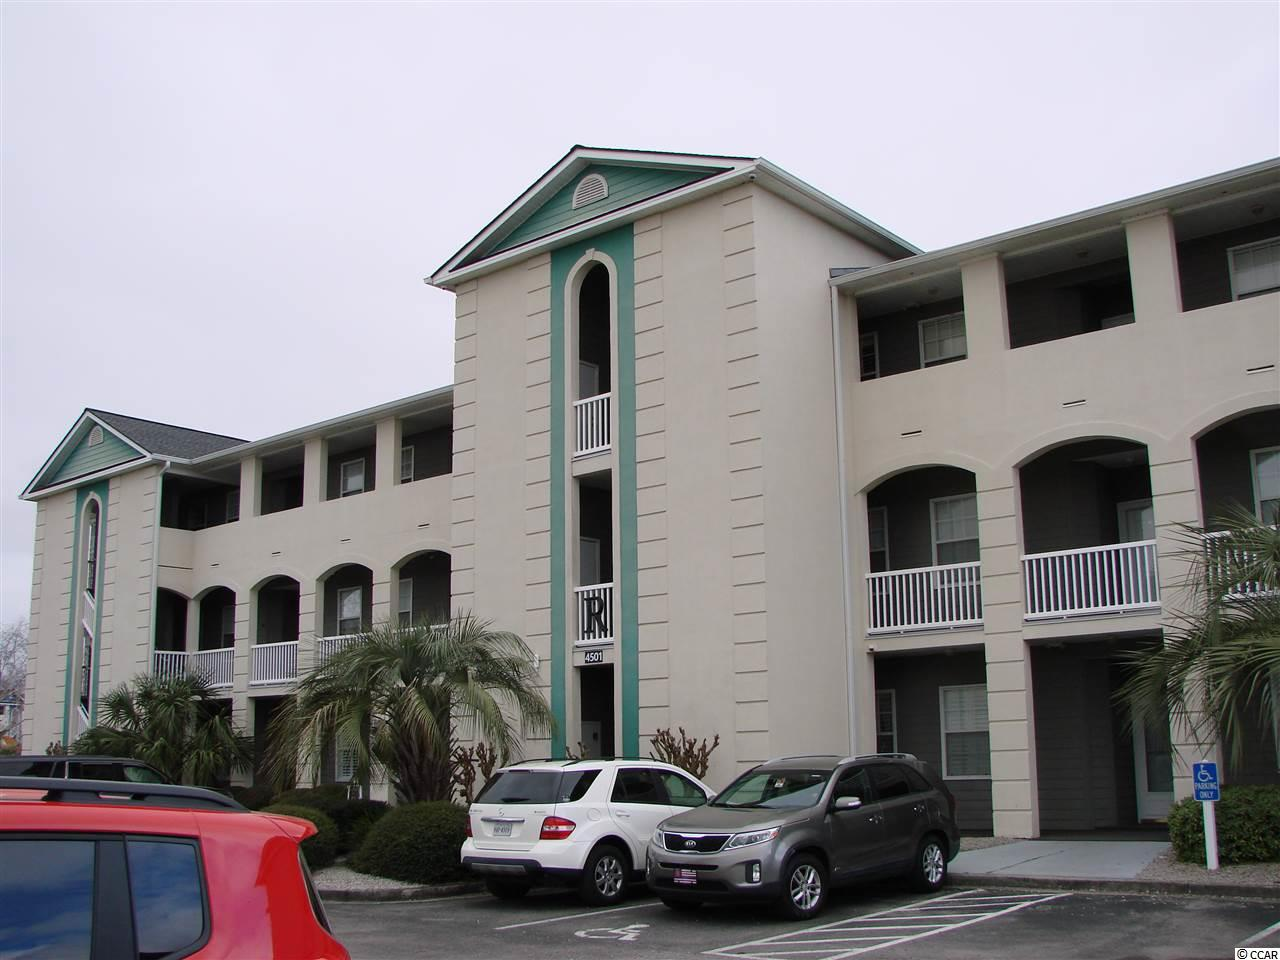 Pristine 1st Floor 3BR 2BA condo in the highly desirable gated community of Carolina Yacht Landing. This lake front Condo has been recently painted along with new flooring including luxury vinyl flooring, tile and carpet.  Strictly used as a 2nd home. This open and split bedroom floor plan has also been upgraded with a screened porch having vinyl windows allowing added use during the hotter and cooler seasons. Plantations shutters throughout and being offered fully furnished. Community offers 2 swimming pools, boat/watercraft parking, day docks along with separate boat slips that can be rented individually. Located slightly west of the swing bridge in North Myrtle Beach making access to area beaches just a quick ride away. Yet, its Little River location means no city taxes!